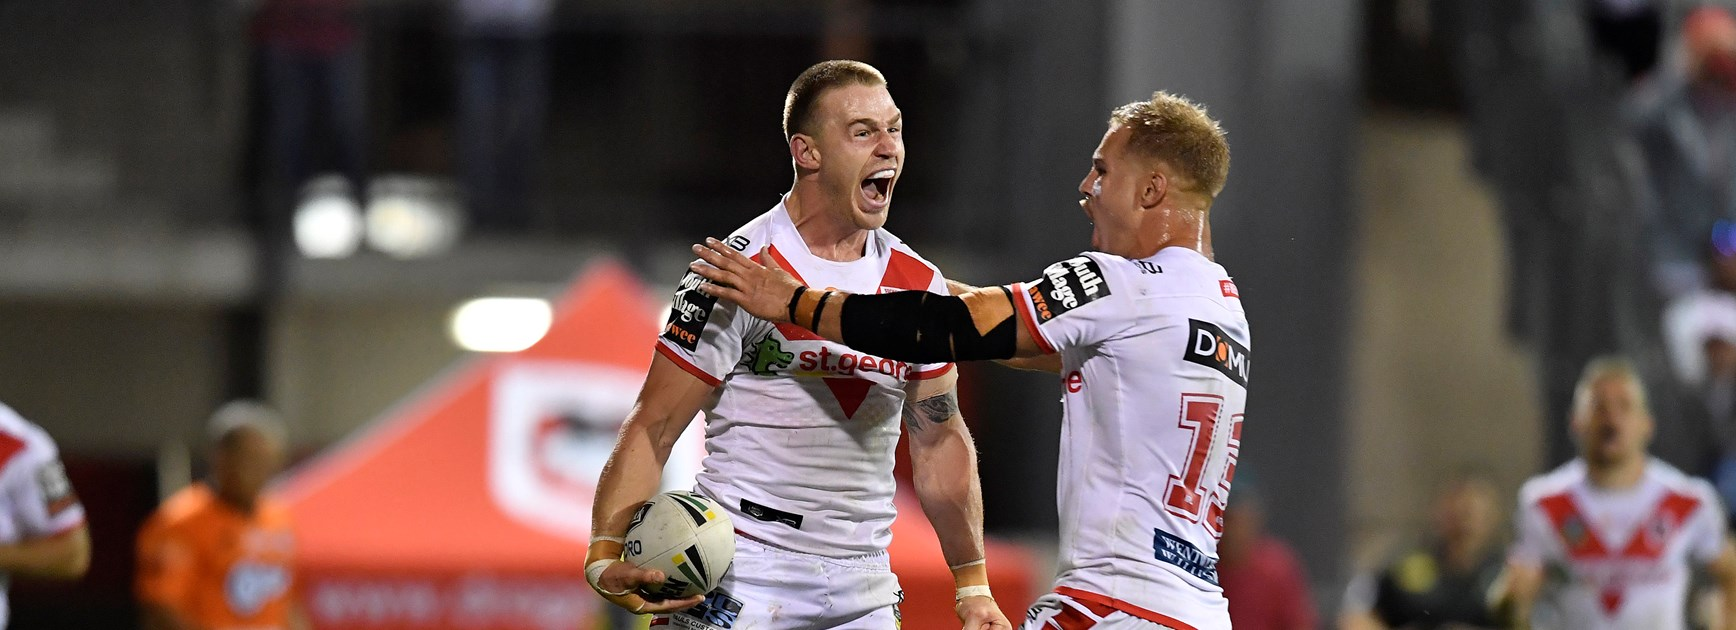 Euan Aitken celebrates a try with Jack de Belin.